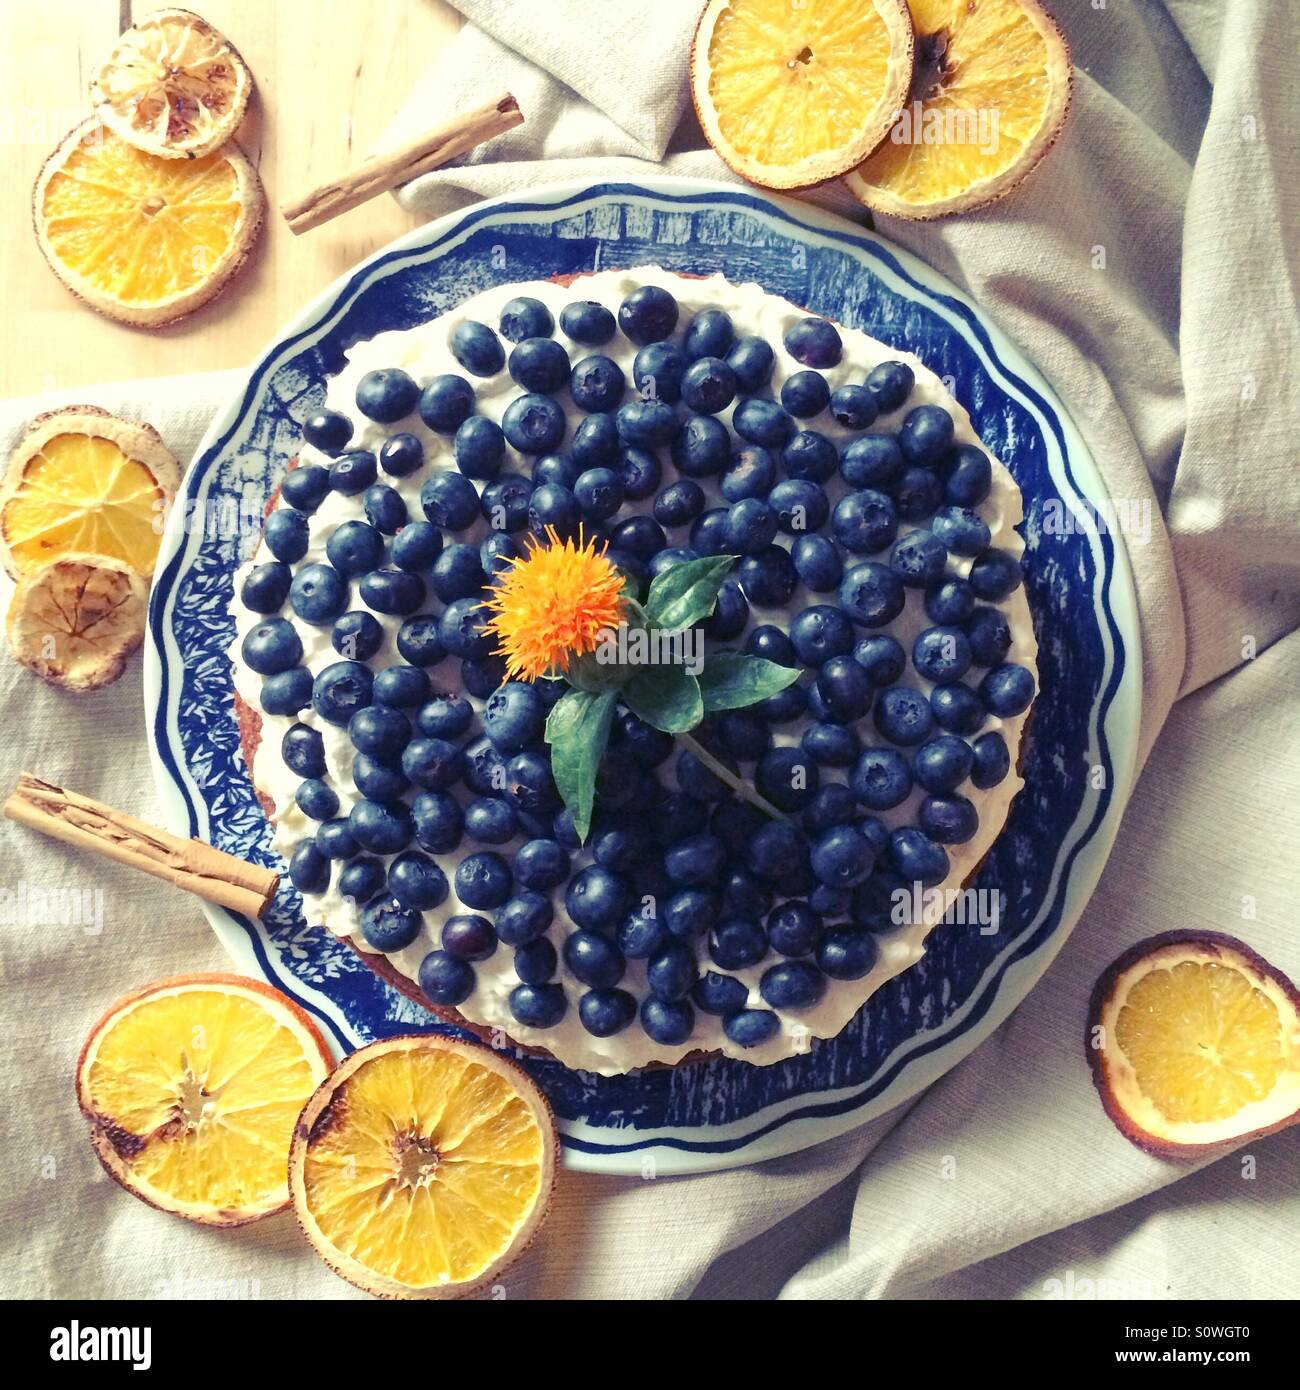 Carrot cake with mascarpone cheese and blueberries. - Stock Image